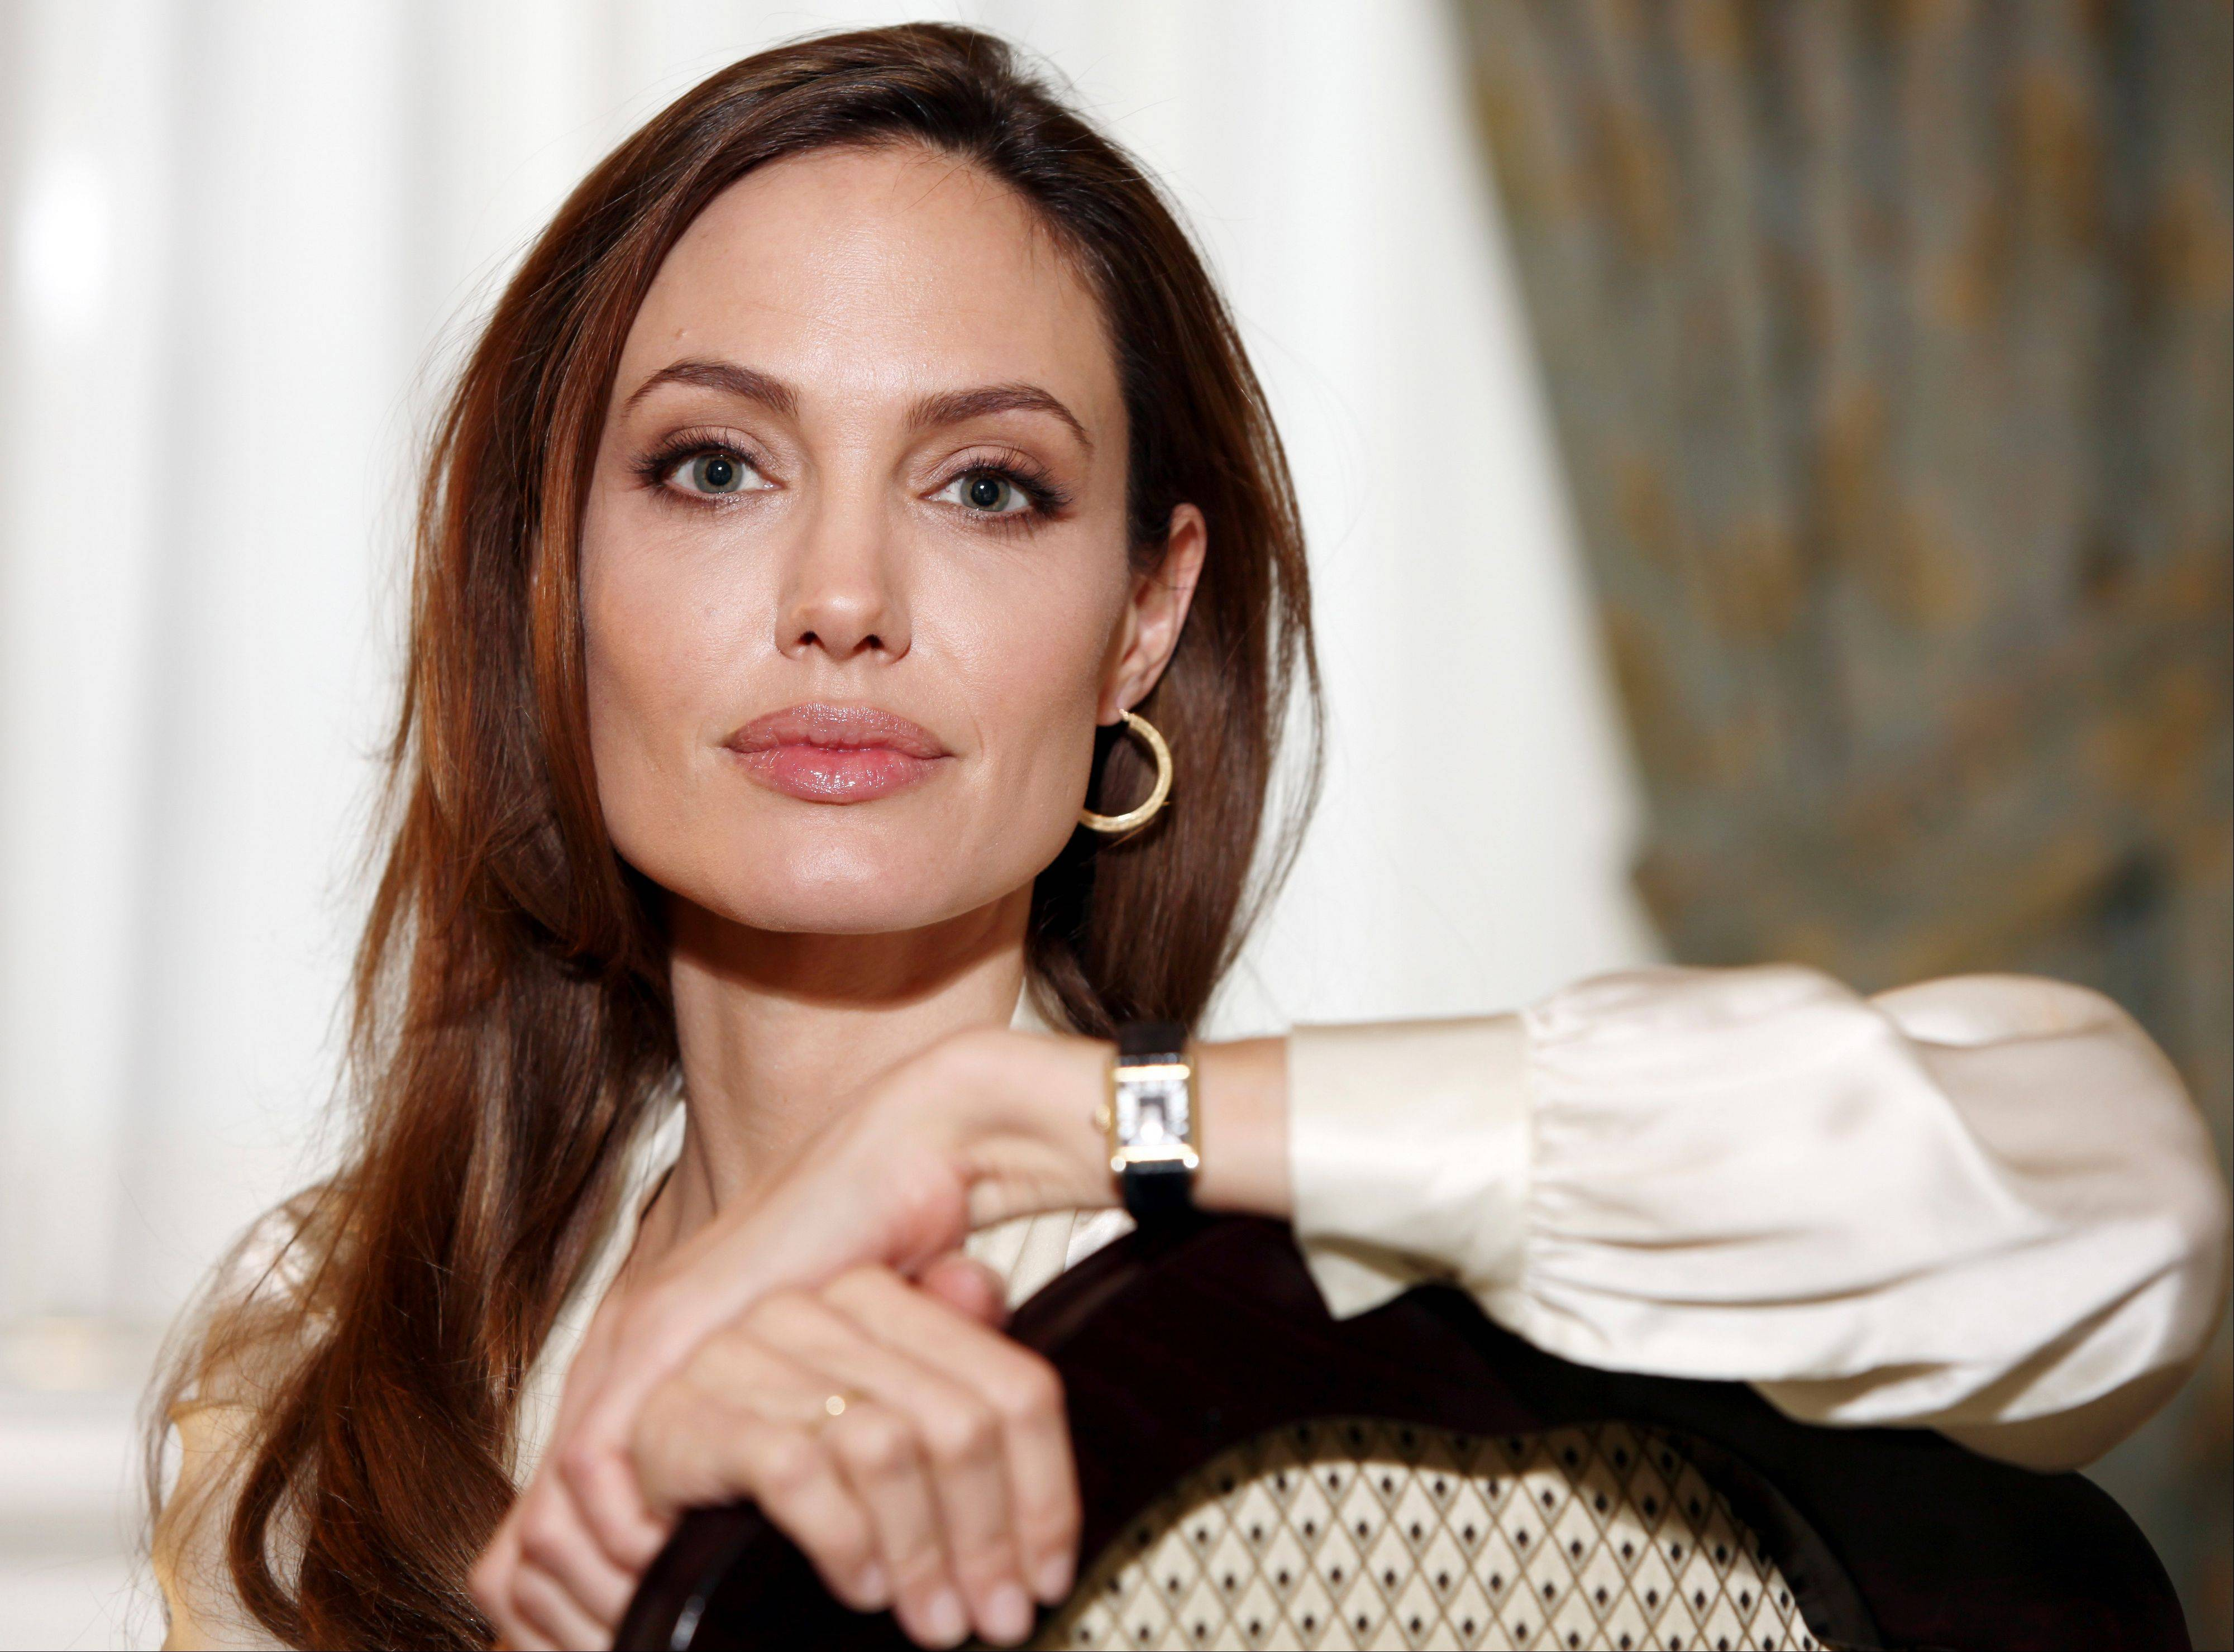 Actress Angelina Jolie has revealed that in April she finished three months of surgical procedures to remove both breasts as a preventive measure.